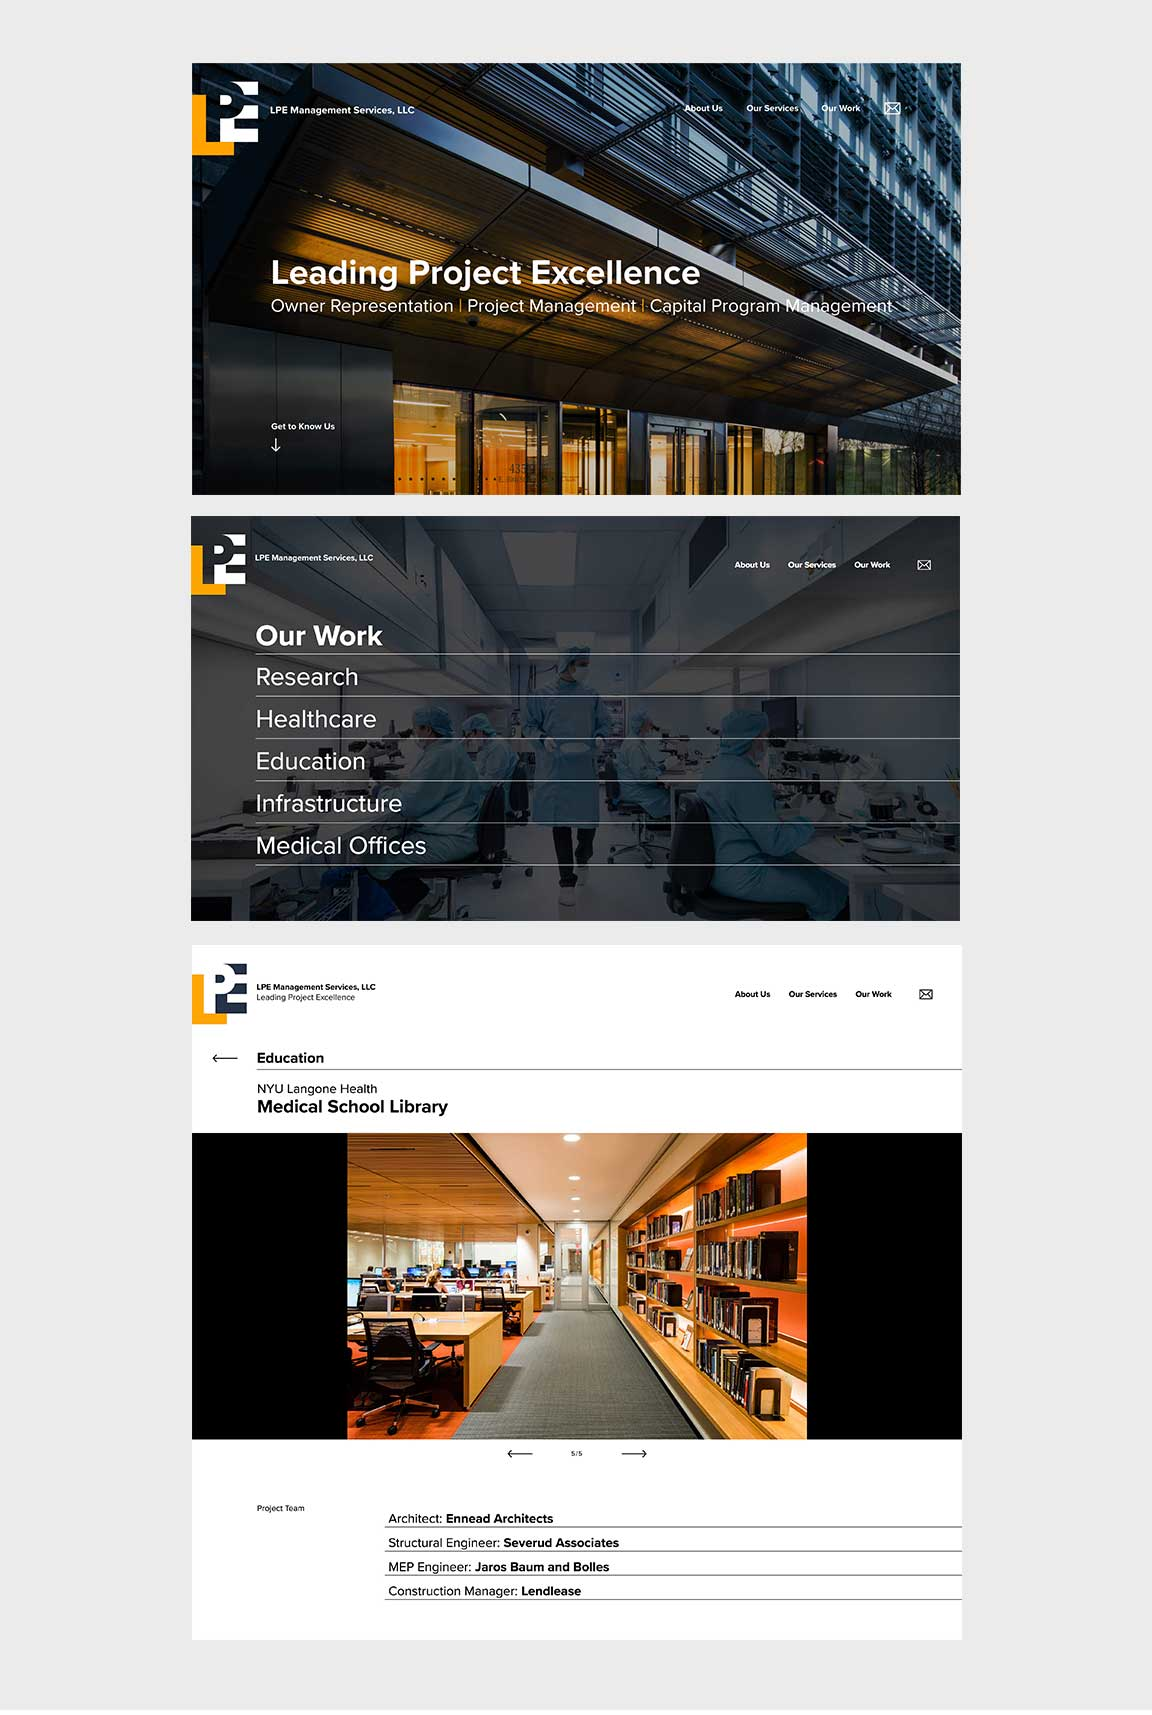 LPE Management Services website design as part of the overall brand identity created by Bernhardt Fudyma Design Group, NY